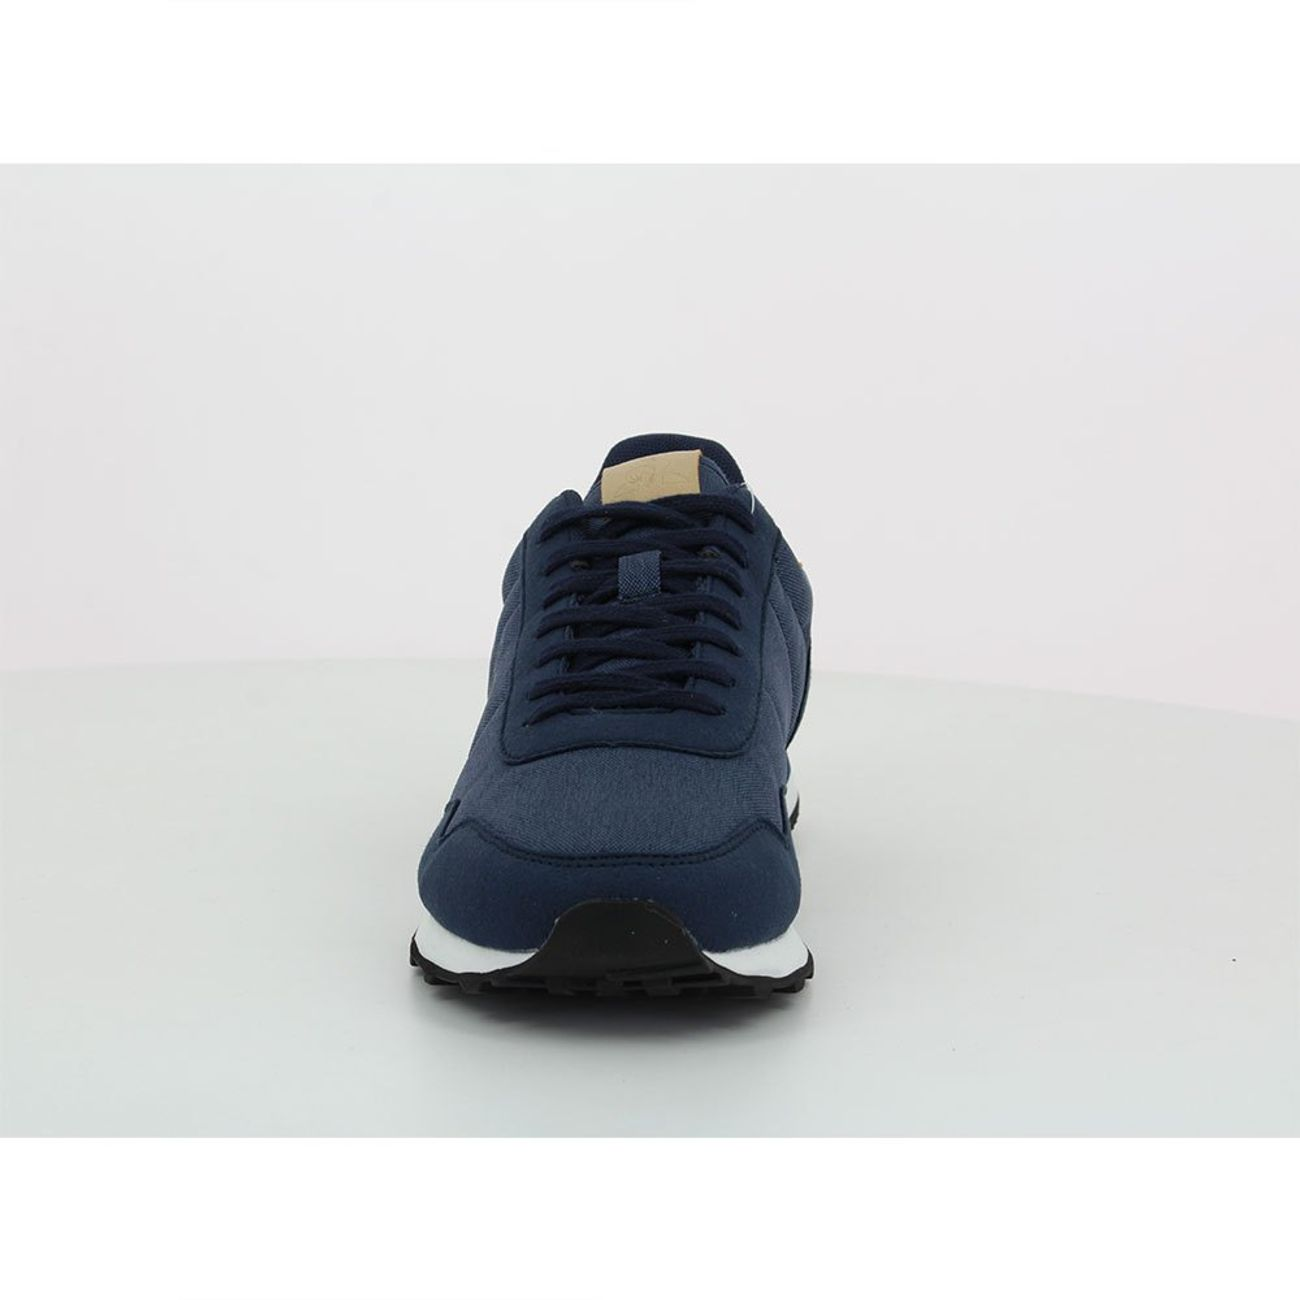 mode homme LE COQ SPORTIF Baskets ASTRA CRAFT HOMME